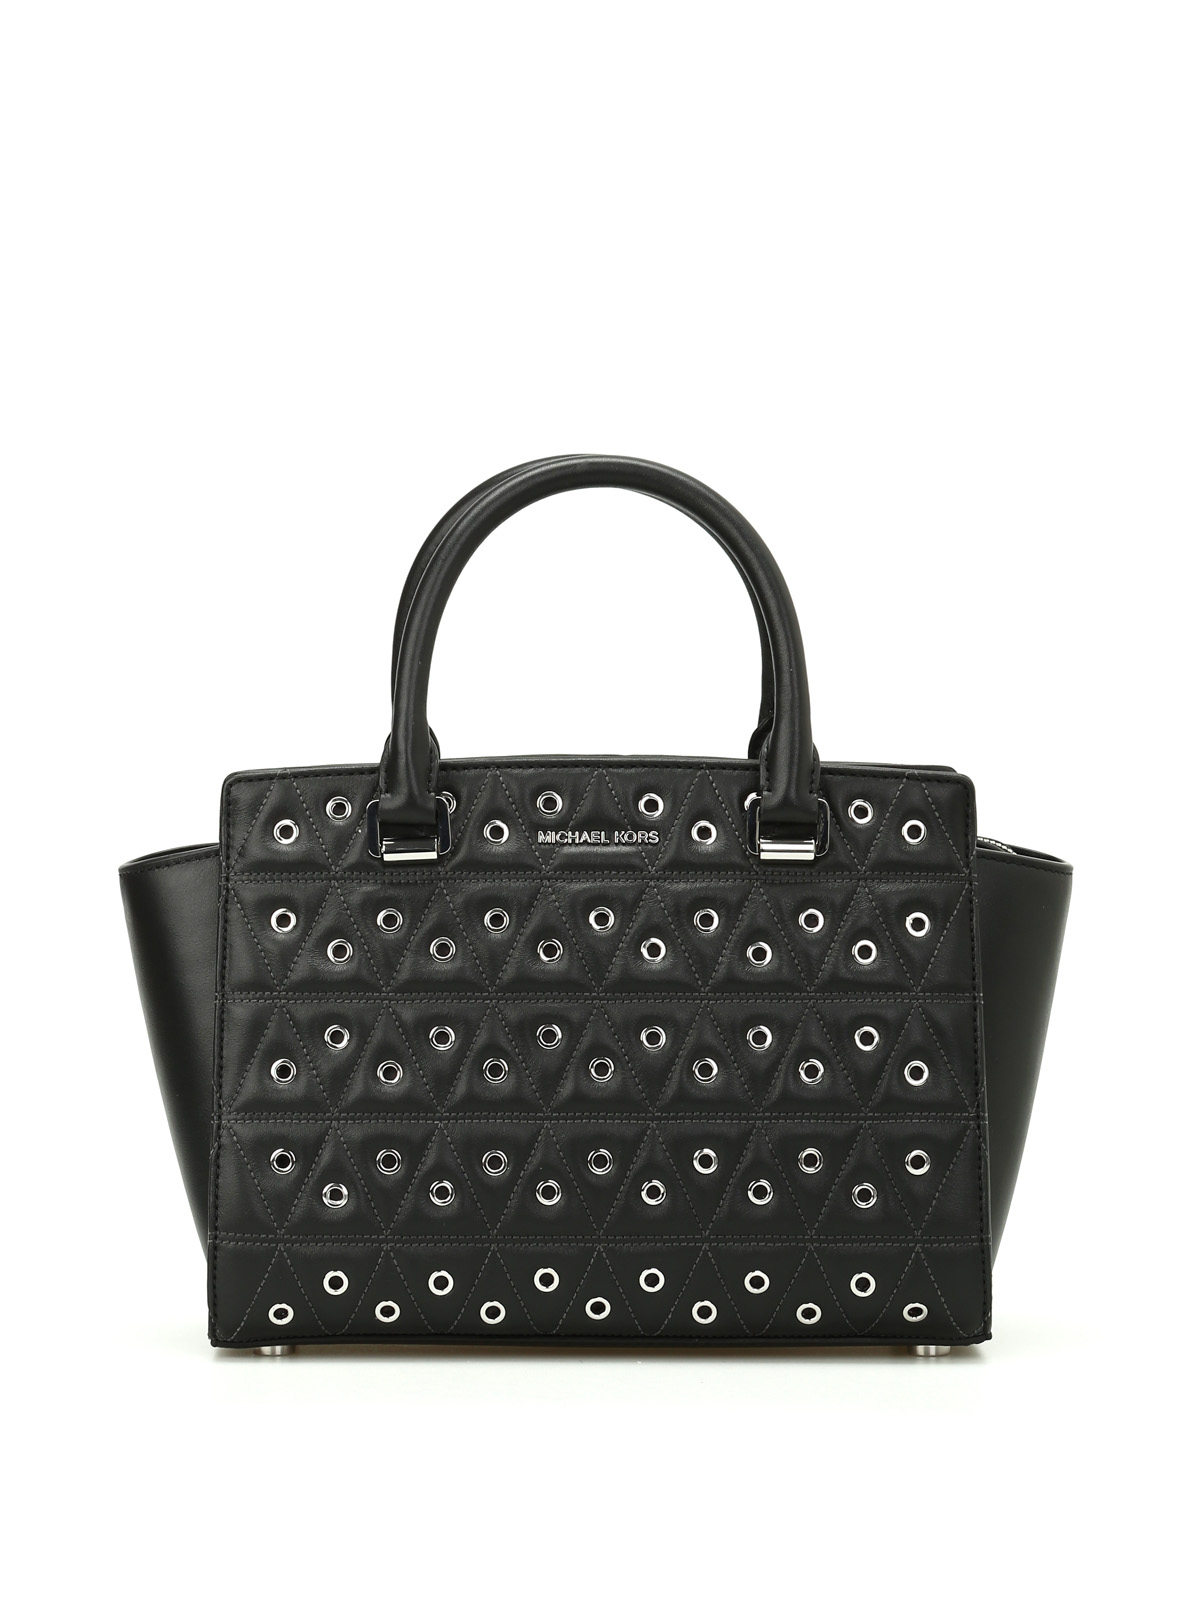 selma embellished medium tote by michael kors totes bags ikrix. Black Bedroom Furniture Sets. Home Design Ideas